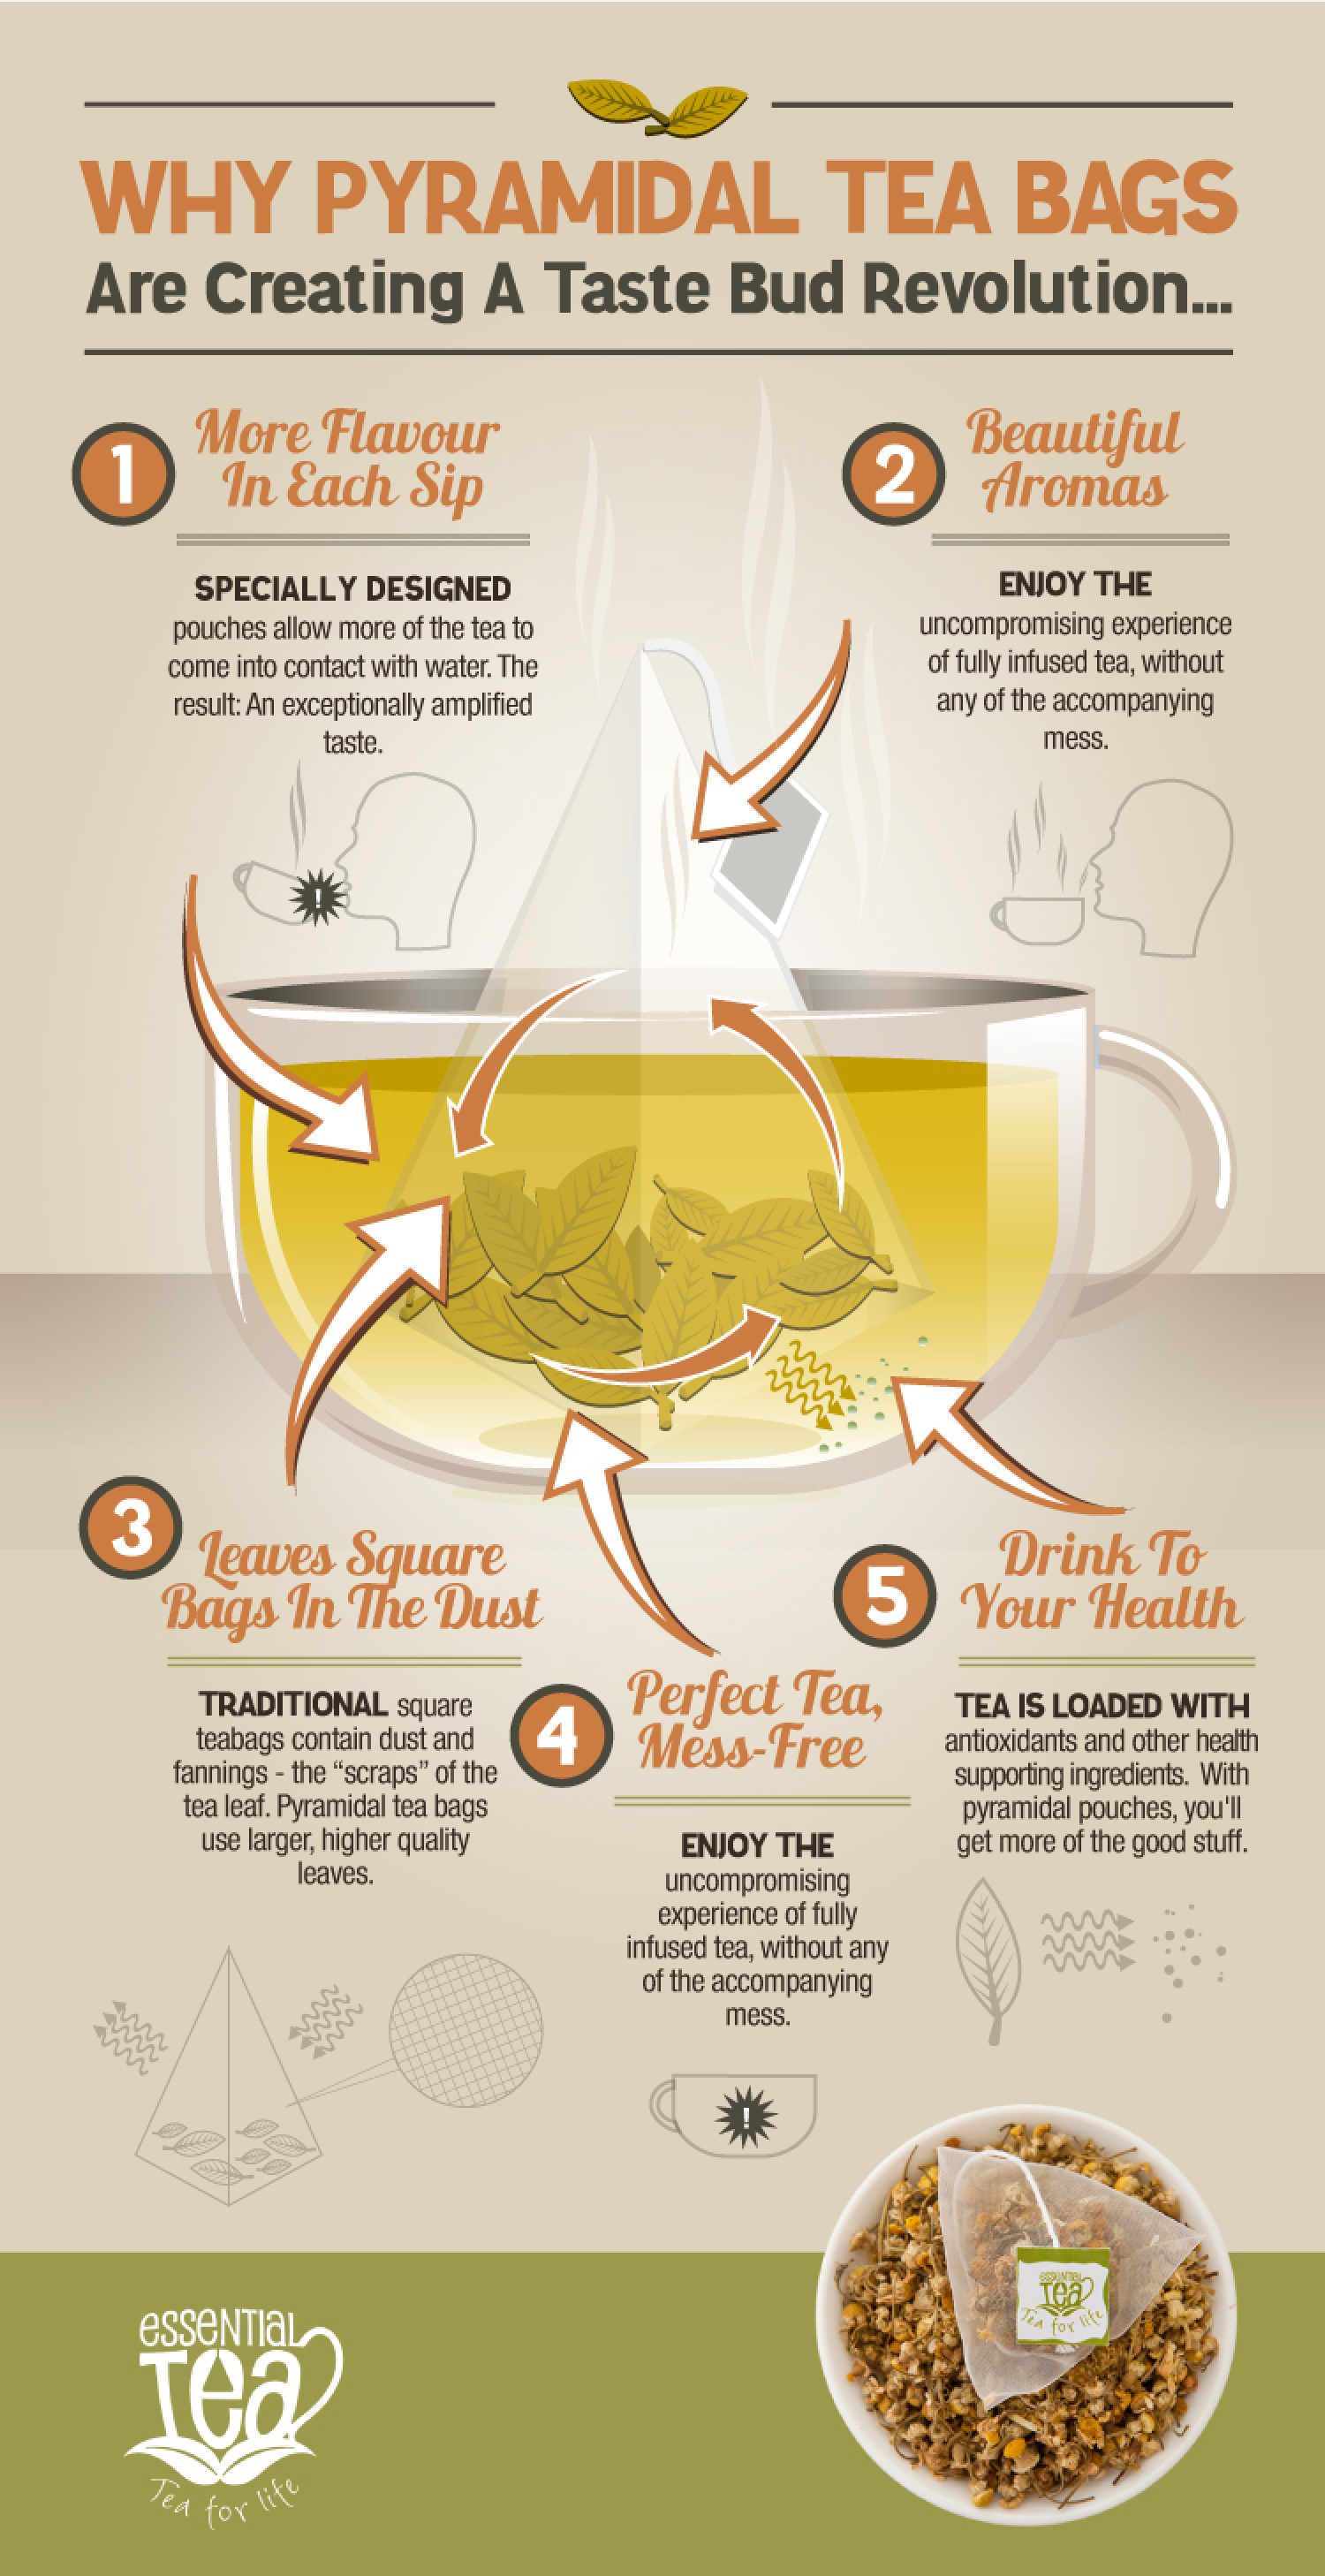 Why Pyramidal tea bags are creating a taste bud Revolution Infographic